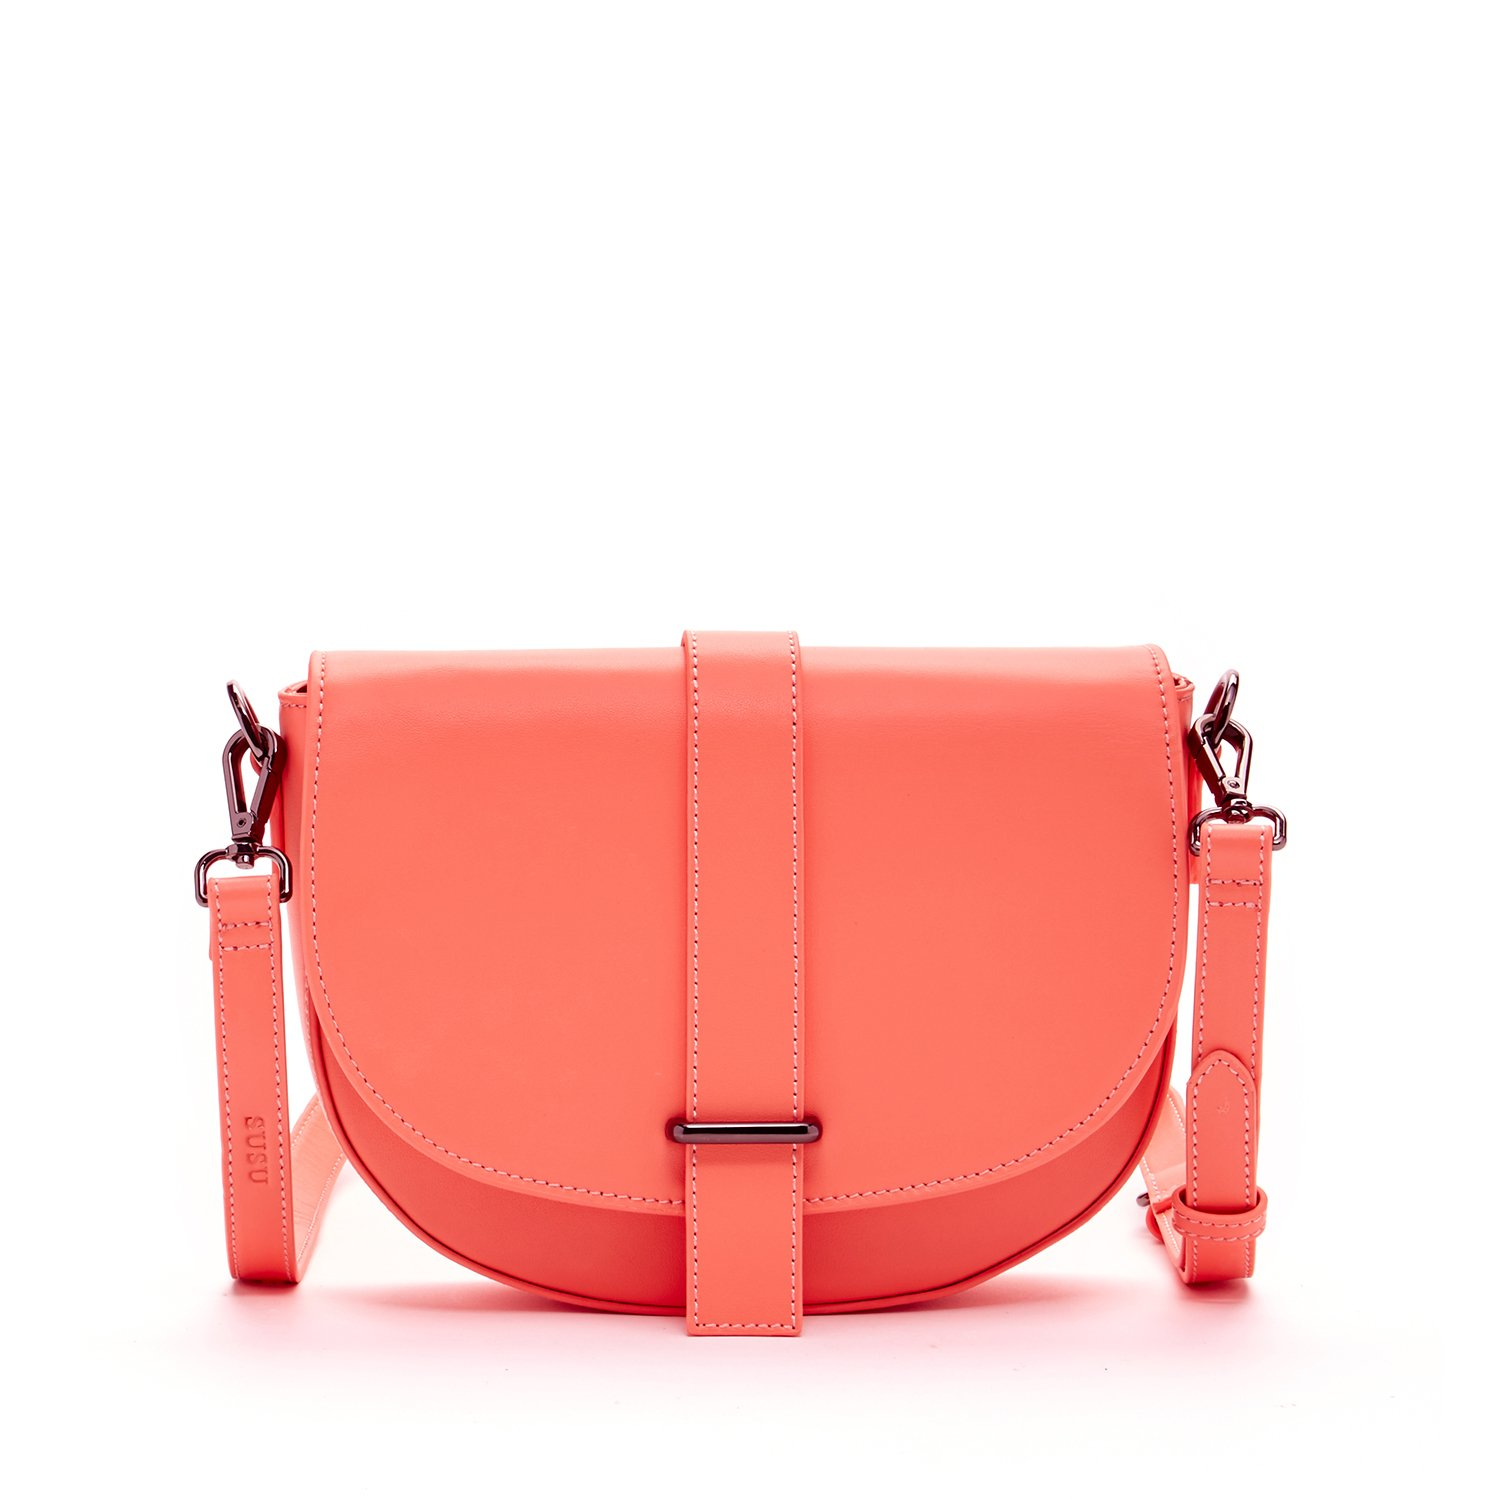 7ebd7d323 Coral Crossbody Bags For Women Leather Saddle Bag Crossover Purse Handbags  and Purses Cute Cross body Designer Peach Pink Across body Saddlebag For  Travel ...